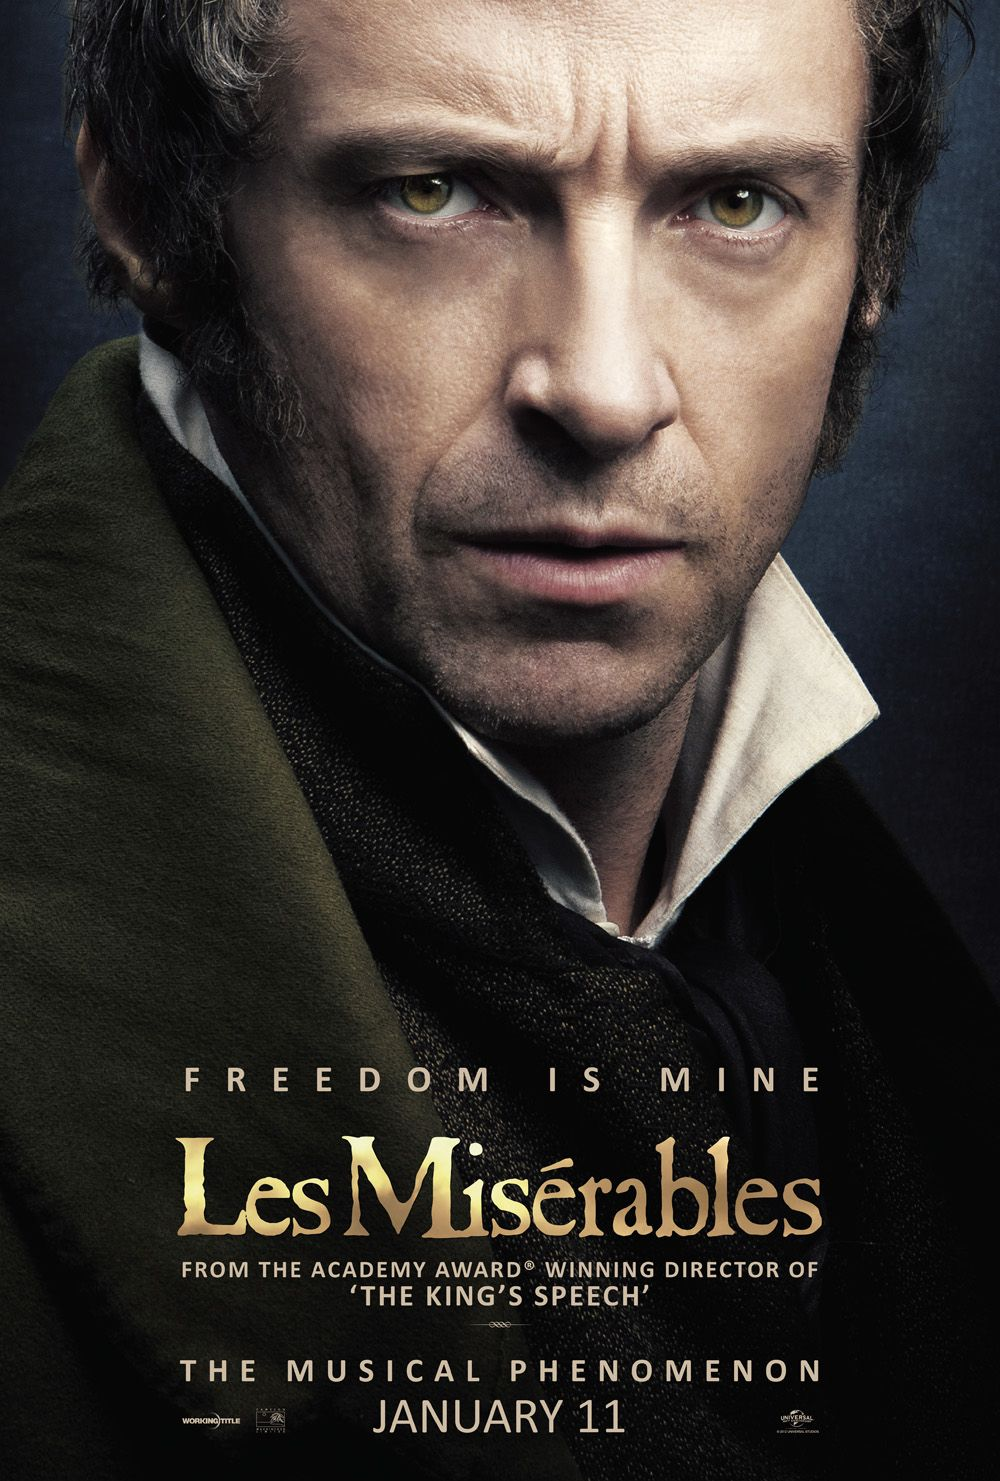 Hugh Jackman S Face Fronts The Latest Poster For Les Miserables